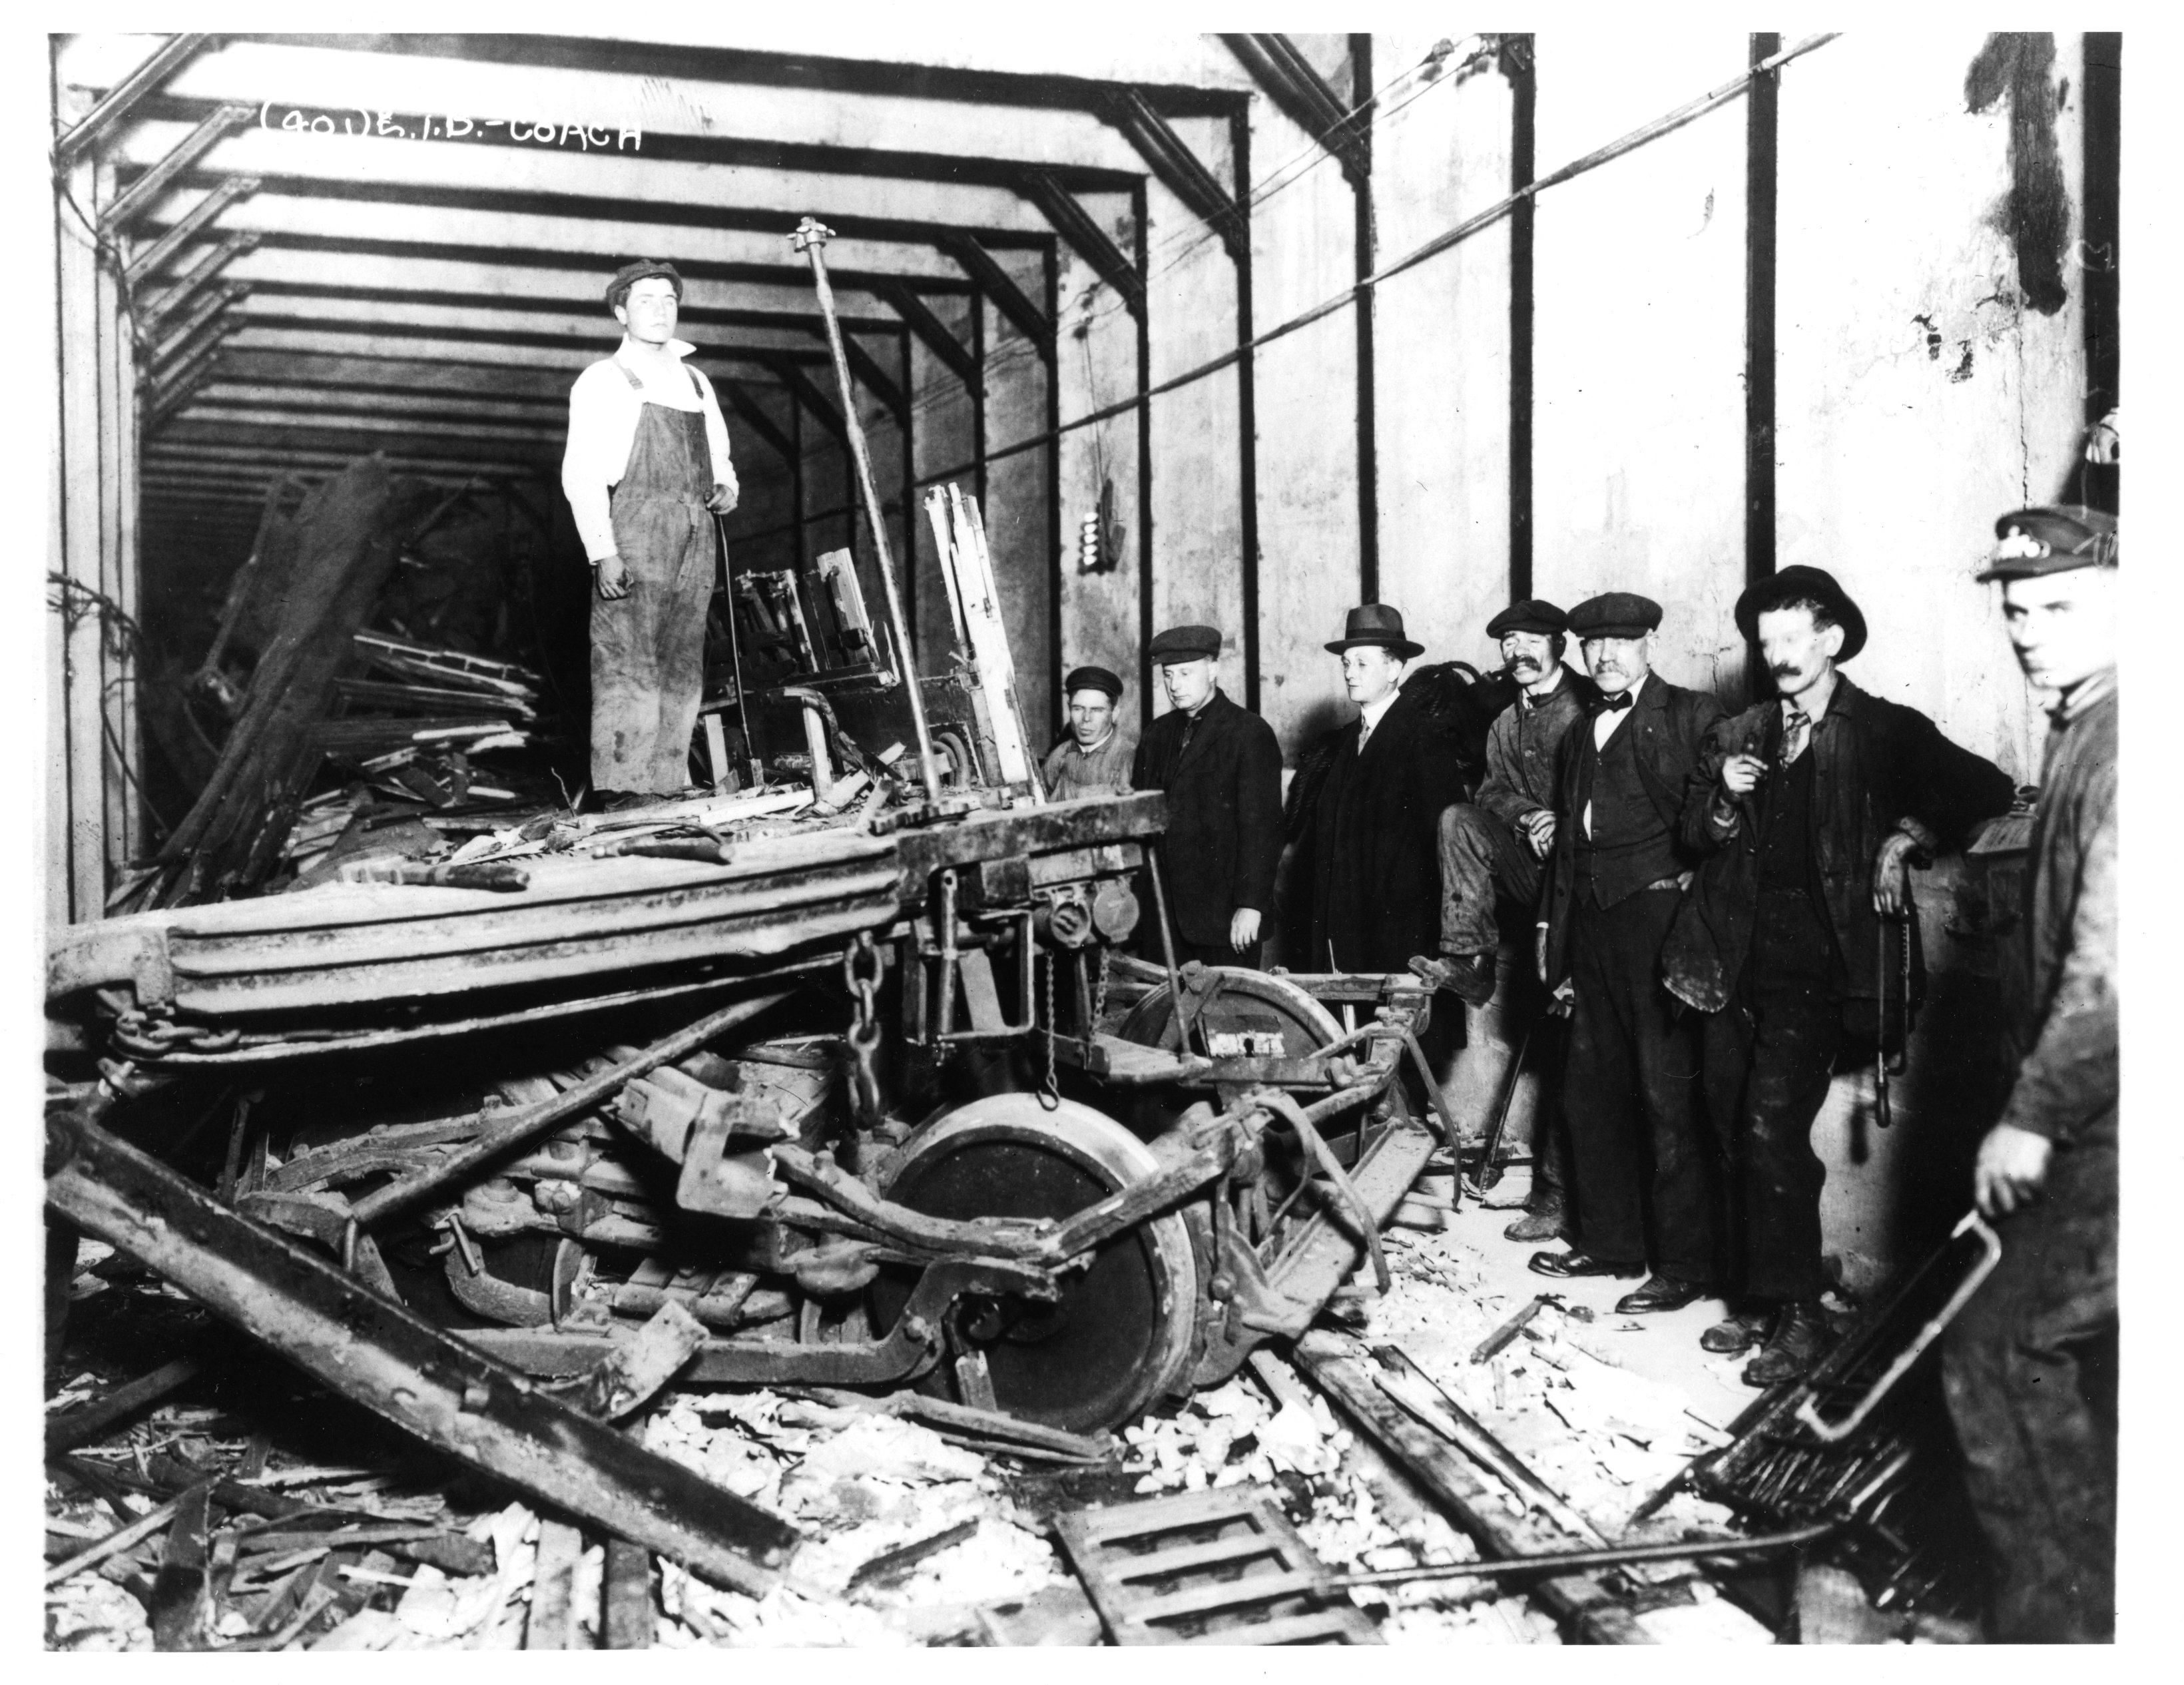 Workers and police stand among wreckage of the Malbone Street Wreck, 1918.